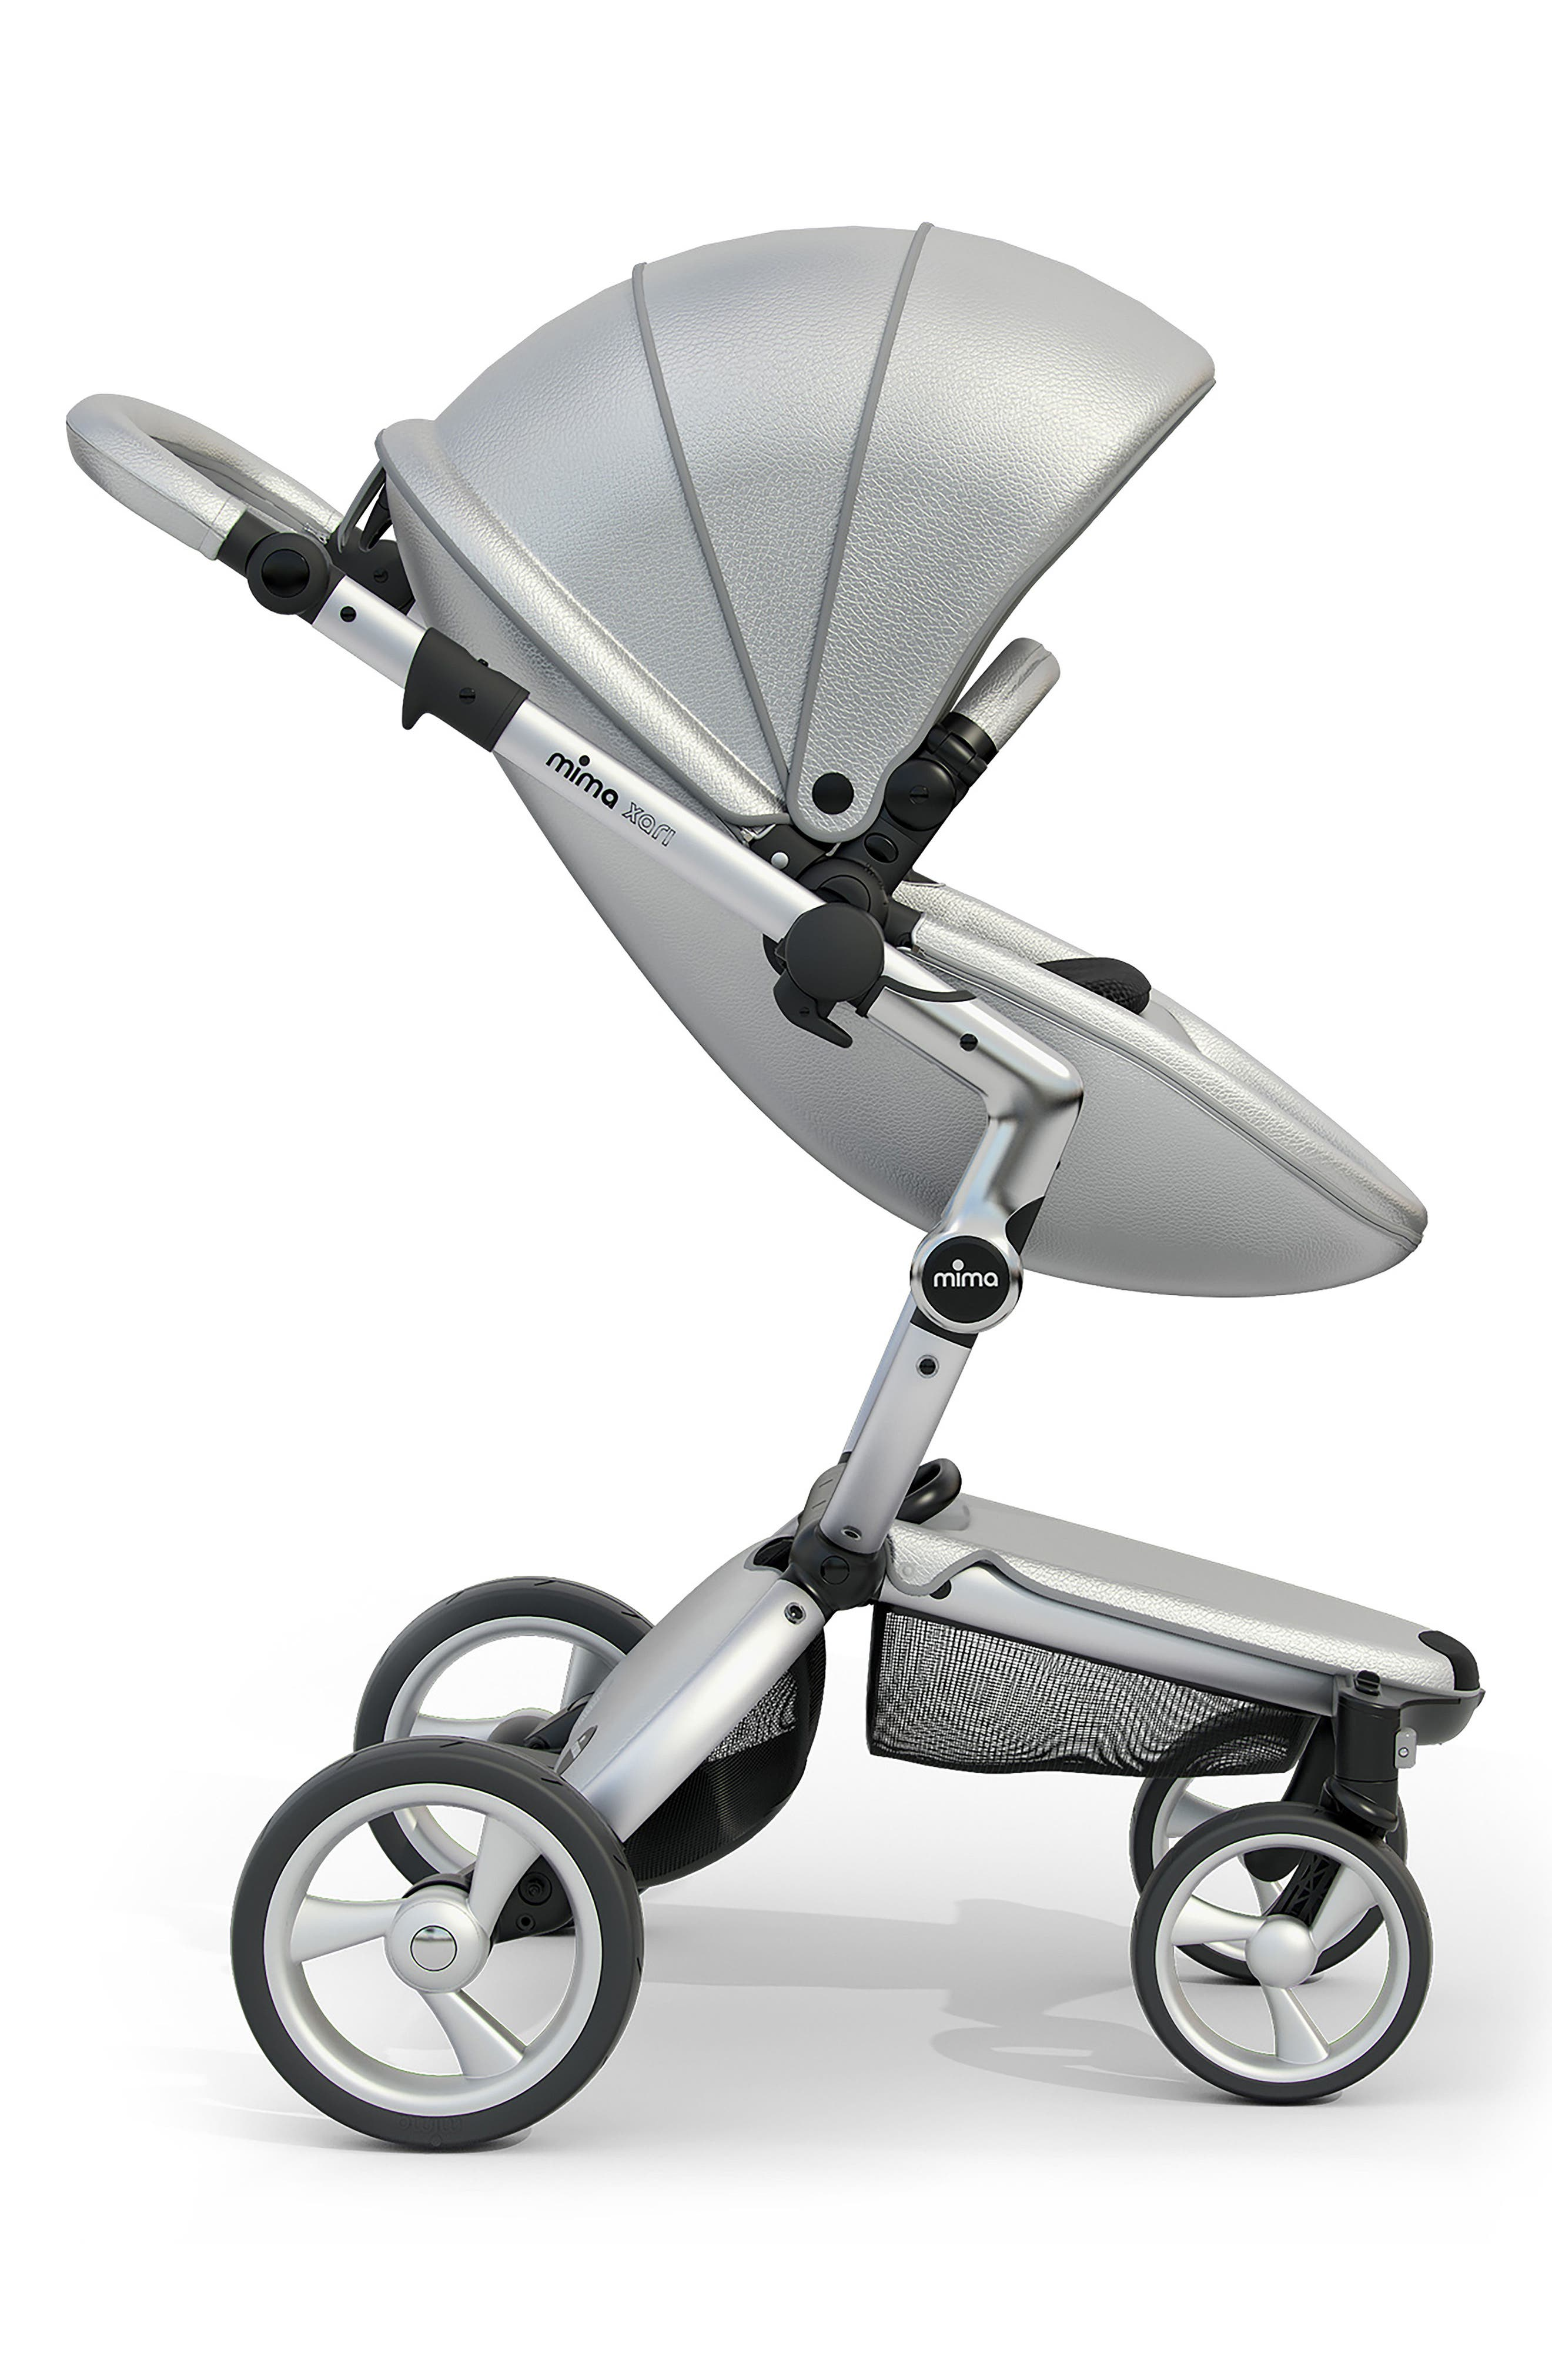 Xari Aluminum Chassis Stroller with Reversible Reclining Seat & Carrycot,                             Alternate thumbnail 3, color,                             ARGENTO / BLACK